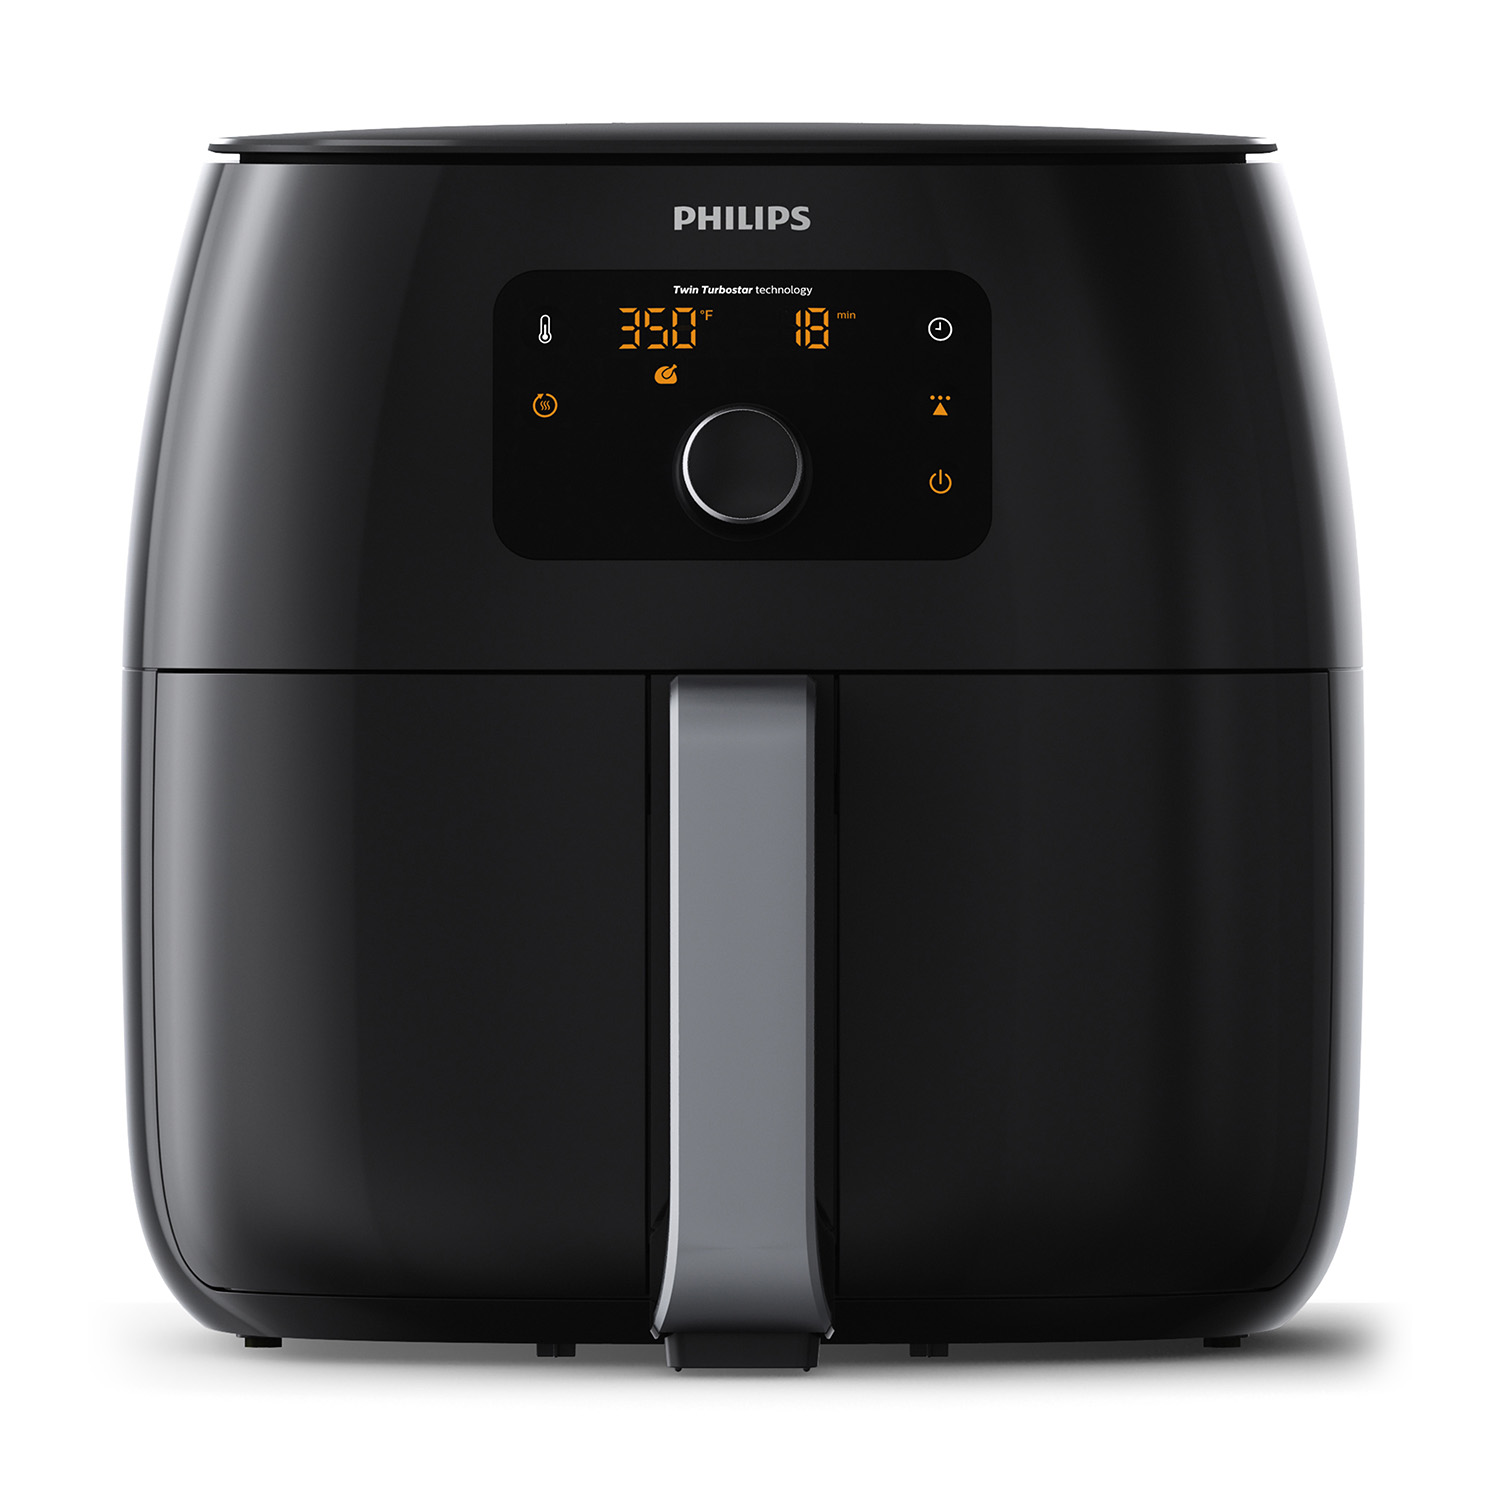 Take $200 off a Philips XXL air fryer